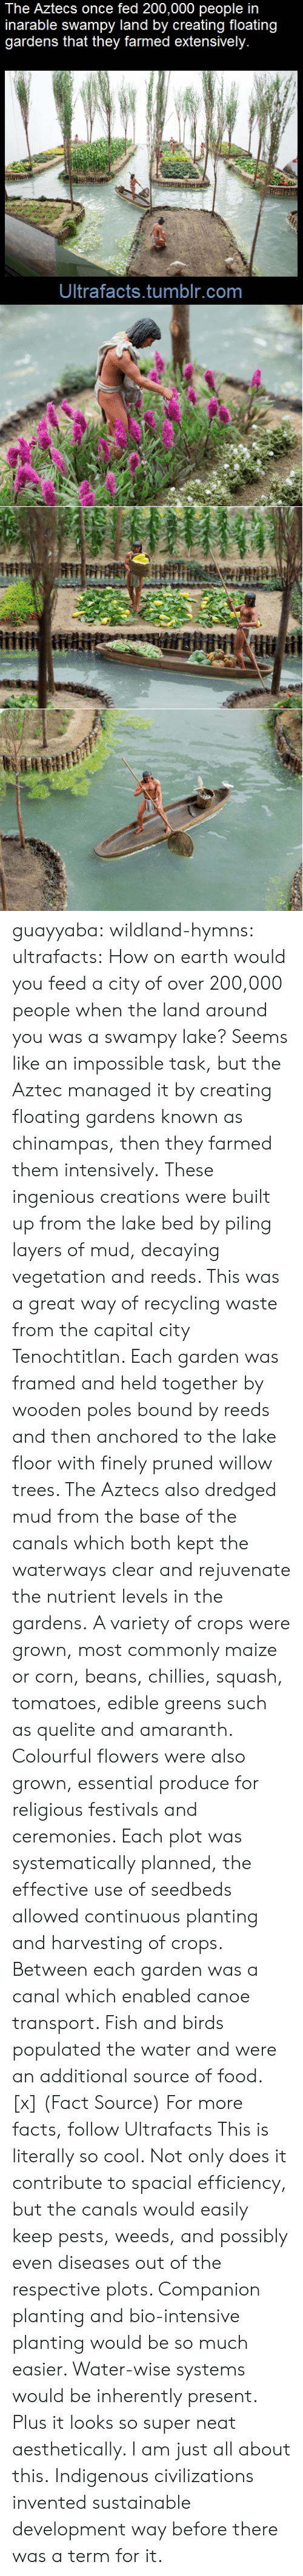 creations: The Aztecs once fed 200,000 people in  inarable swampy land by creating floating  gardens that they farmed extensively.  Ultrafacts.tumblr.com guayyaba: wildland-hymns:  ultrafacts:  How on earth would you feed a city of over 200,000 people when the land around you was a swampy lake? Seems like an impossible task, but the Aztec managed it by creating floating gardens known as chinampas, then they farmed them intensively. These ingenious creations were built up from the lake bed by piling layers of mud, decaying vegetation and reeds. This was a great way of recycling waste from the capital city Tenochtitlan. Each garden was framed and held together by wooden poles bound by reeds and then anchored to the lake floor with finely pruned willow trees. The Aztecs also dredged mud from the base of the canals which both kept the waterways clear and rejuvenate the nutrient levels in the gardens. A variety of crops were grown, most commonly maize or corn, beans, chillies, squash, tomatoes, edible greens such as quelite and amaranth. Colourful flowers were also grown, essential produce for religious festivals and ceremonies. Each plot was systematically planned, the effective use of seedbeds allowed continuous planting and harvesting of crops. Between each garden was a canal which enabled canoe transport. Fish and birds populated the water and were an additional source of food. [x] (Fact Source) For more facts, follow Ultrafacts   This is literally so cool. Not only does it contribute to spacial efficiency, but the canals would easily keep pests, weeds, and possibly even diseases out of the respective plots. Companion planting and bio-intensive planting would be so much easier. Water-wise systems would be inherently present. Plus it looks so super neat aesthetically. I am just all about this.   Indigenous civilizations invented sustainable development way before there was a term for it.